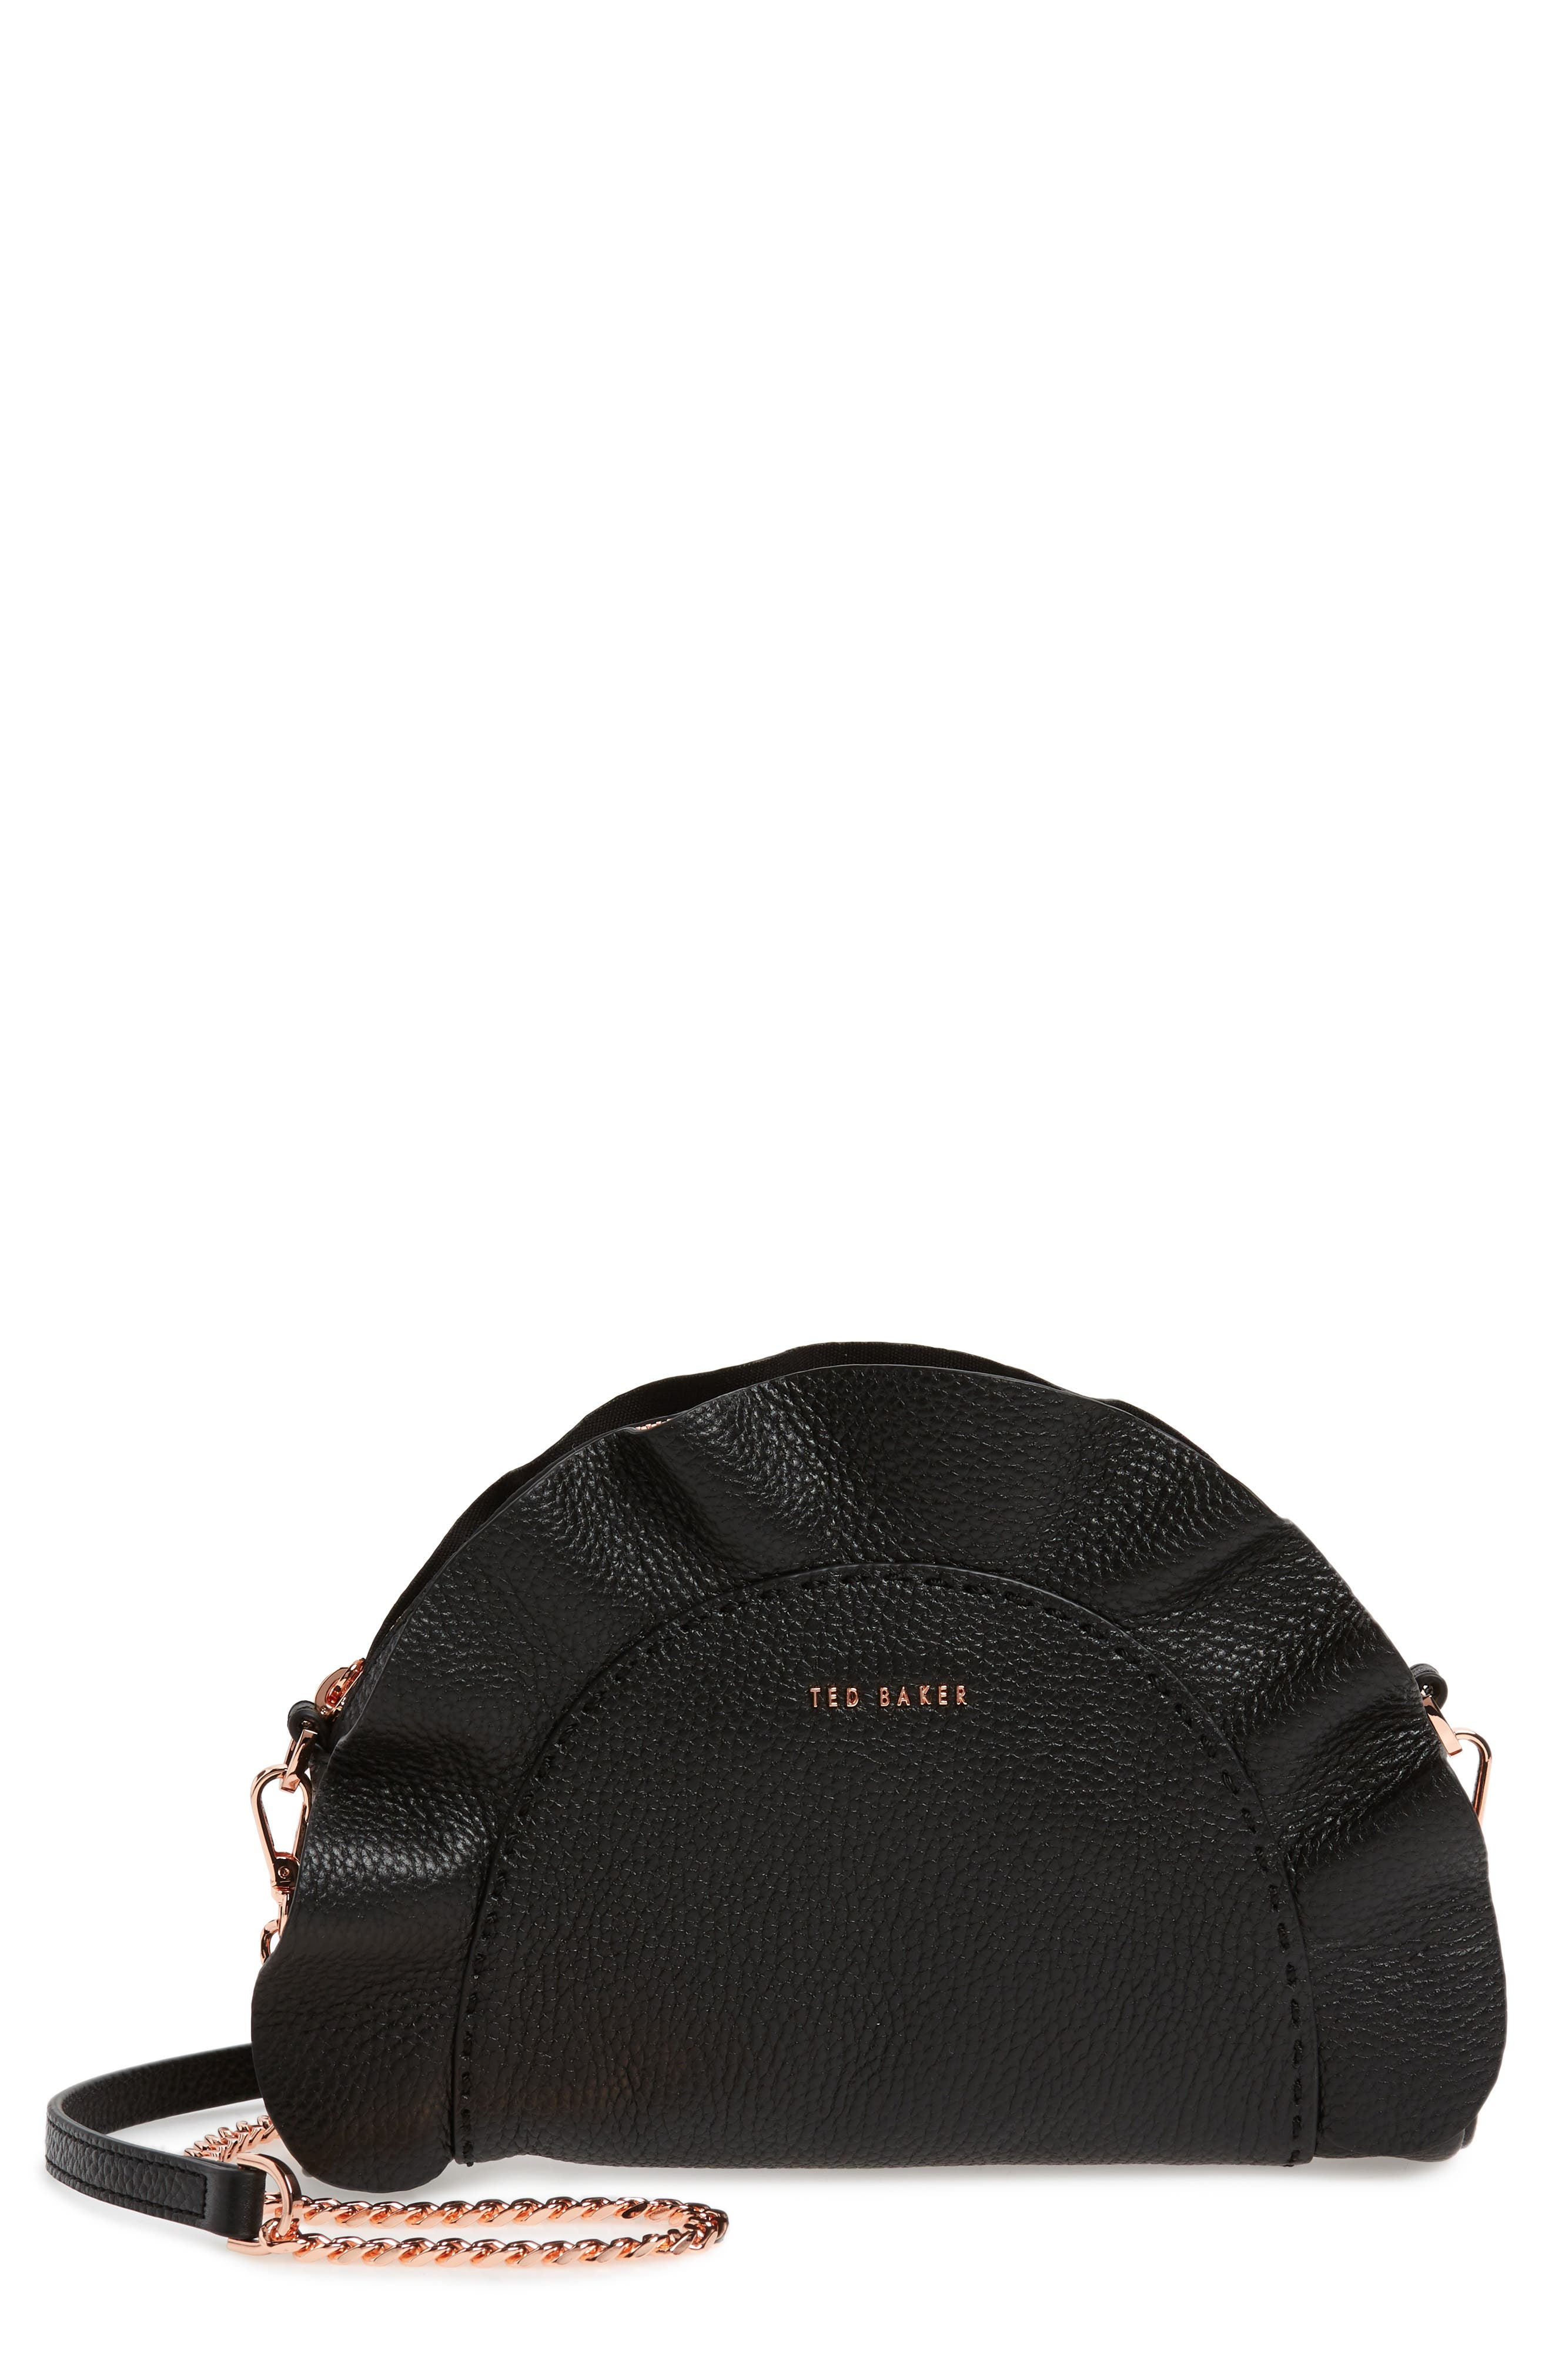 TED BAKER LONDON Ruffle Half Moon Leather Crossbody Bag, Main, color, 001